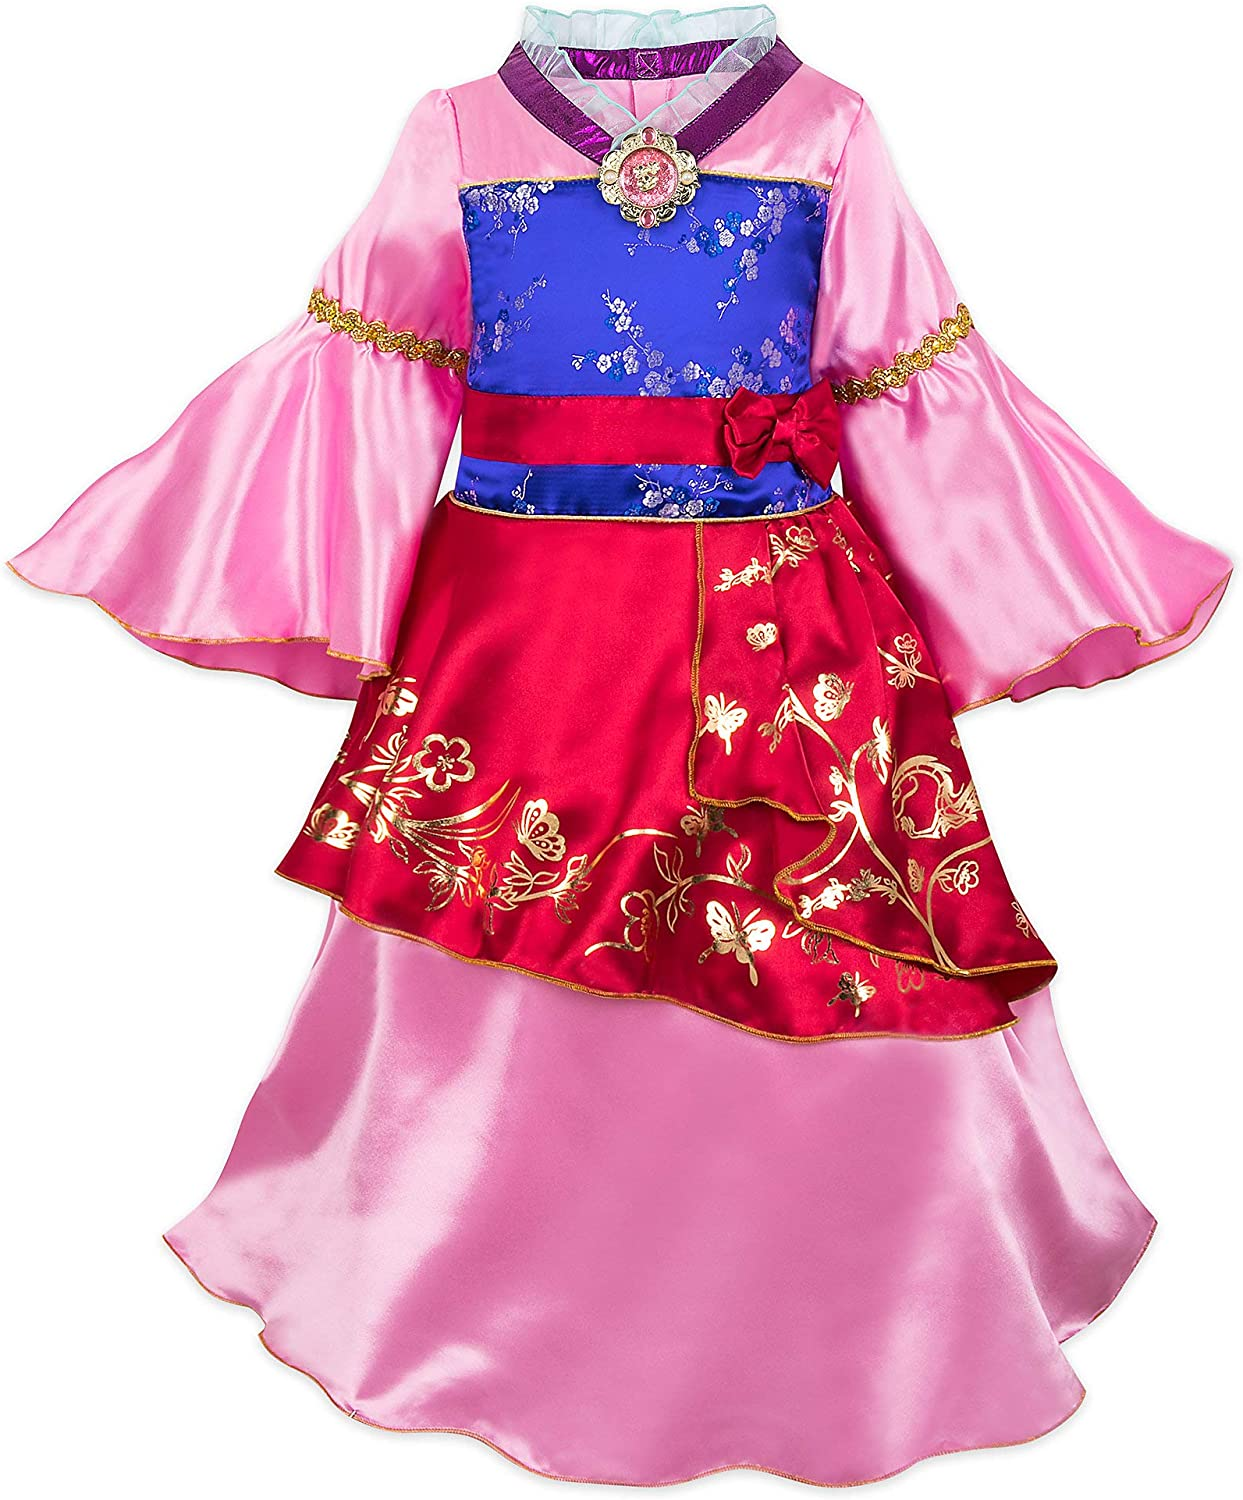 Disney Mulan Costume for Kids Multi